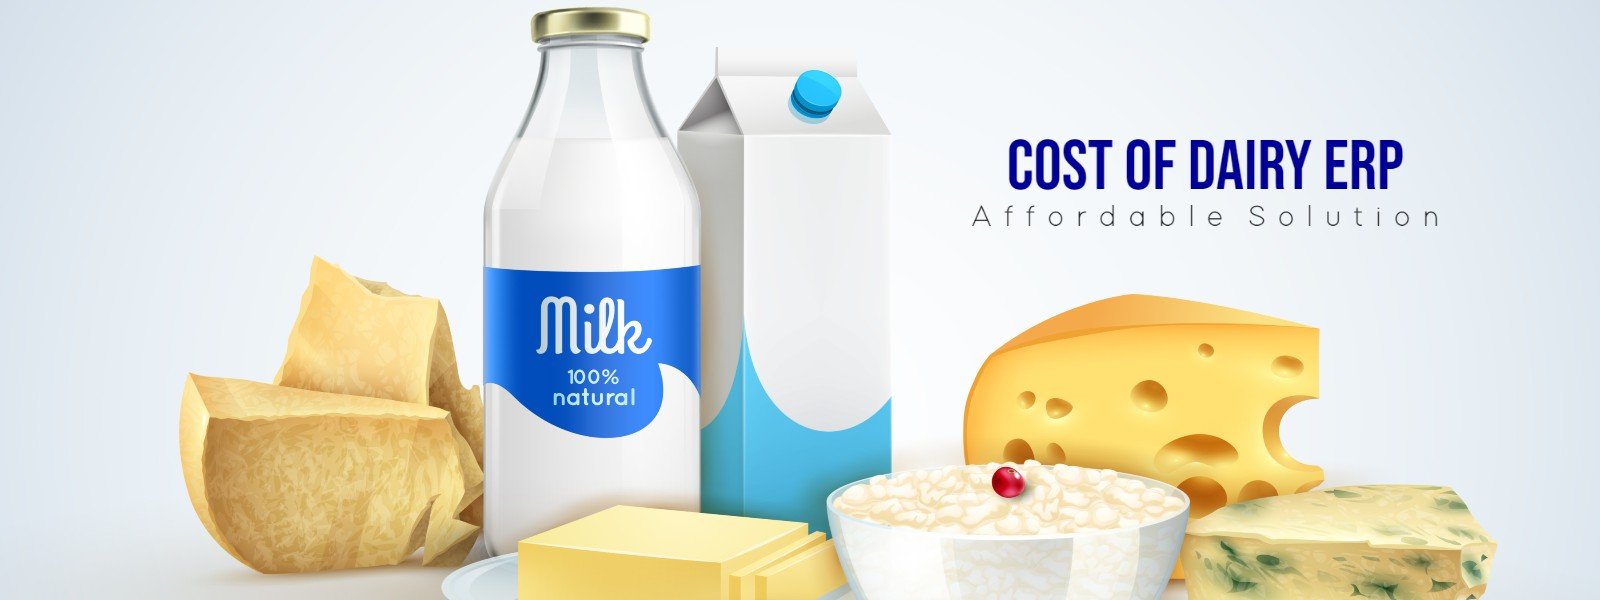 dairy-erp-cost